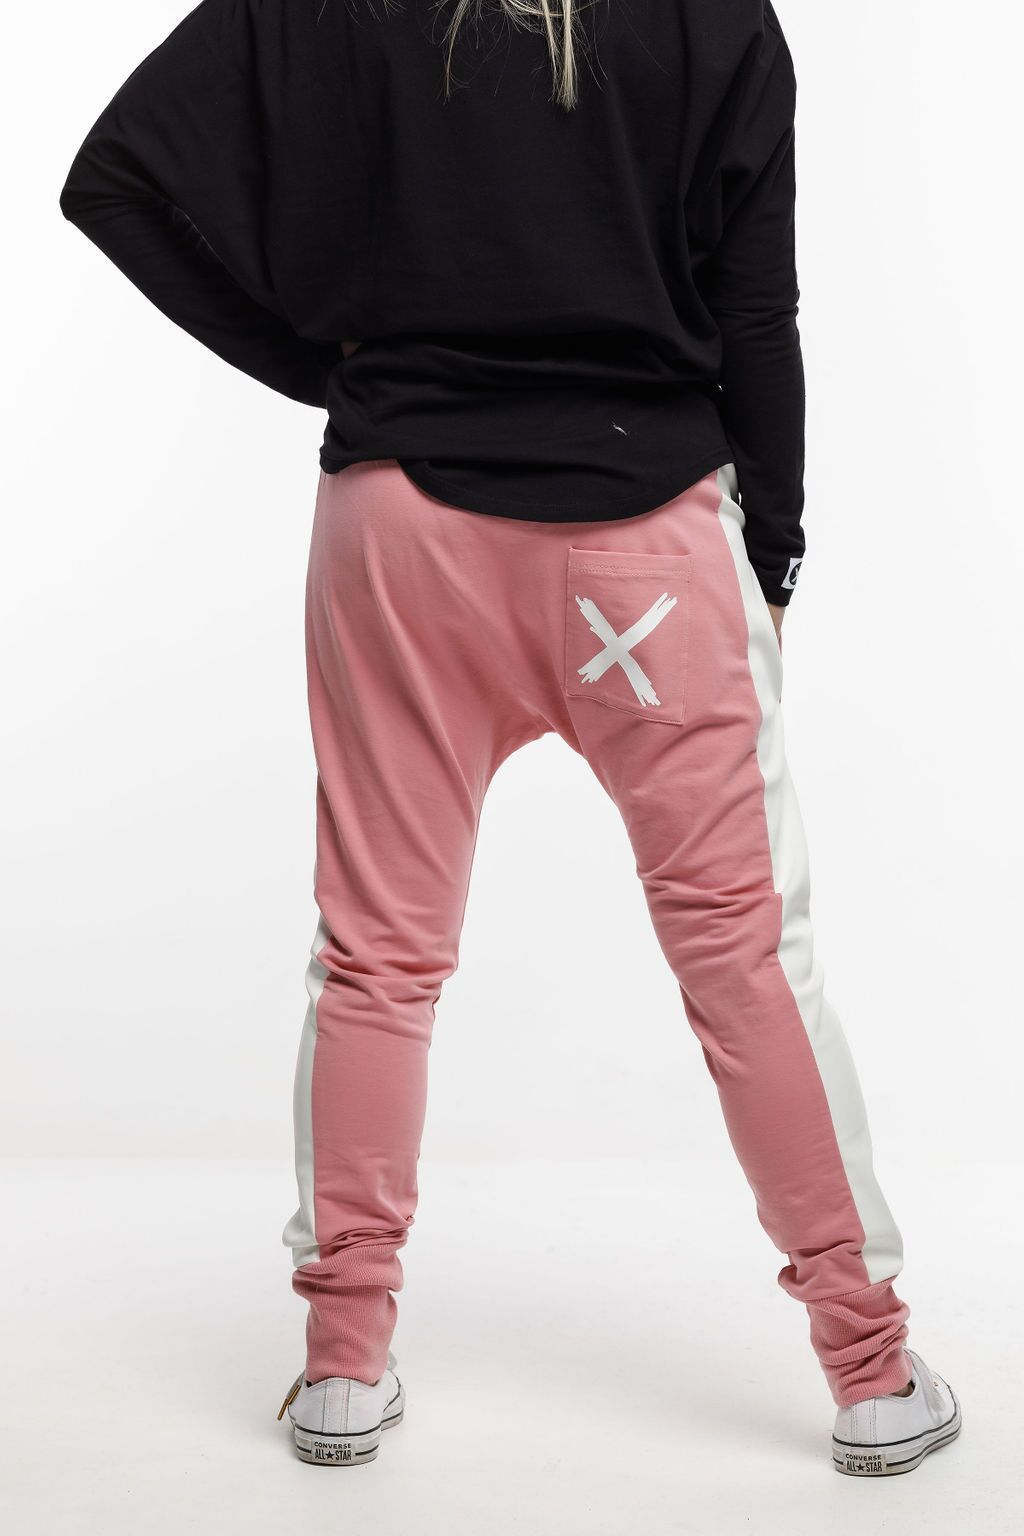 Home-Lee: Relaxer Pants - Rose Pink With X - 6 image